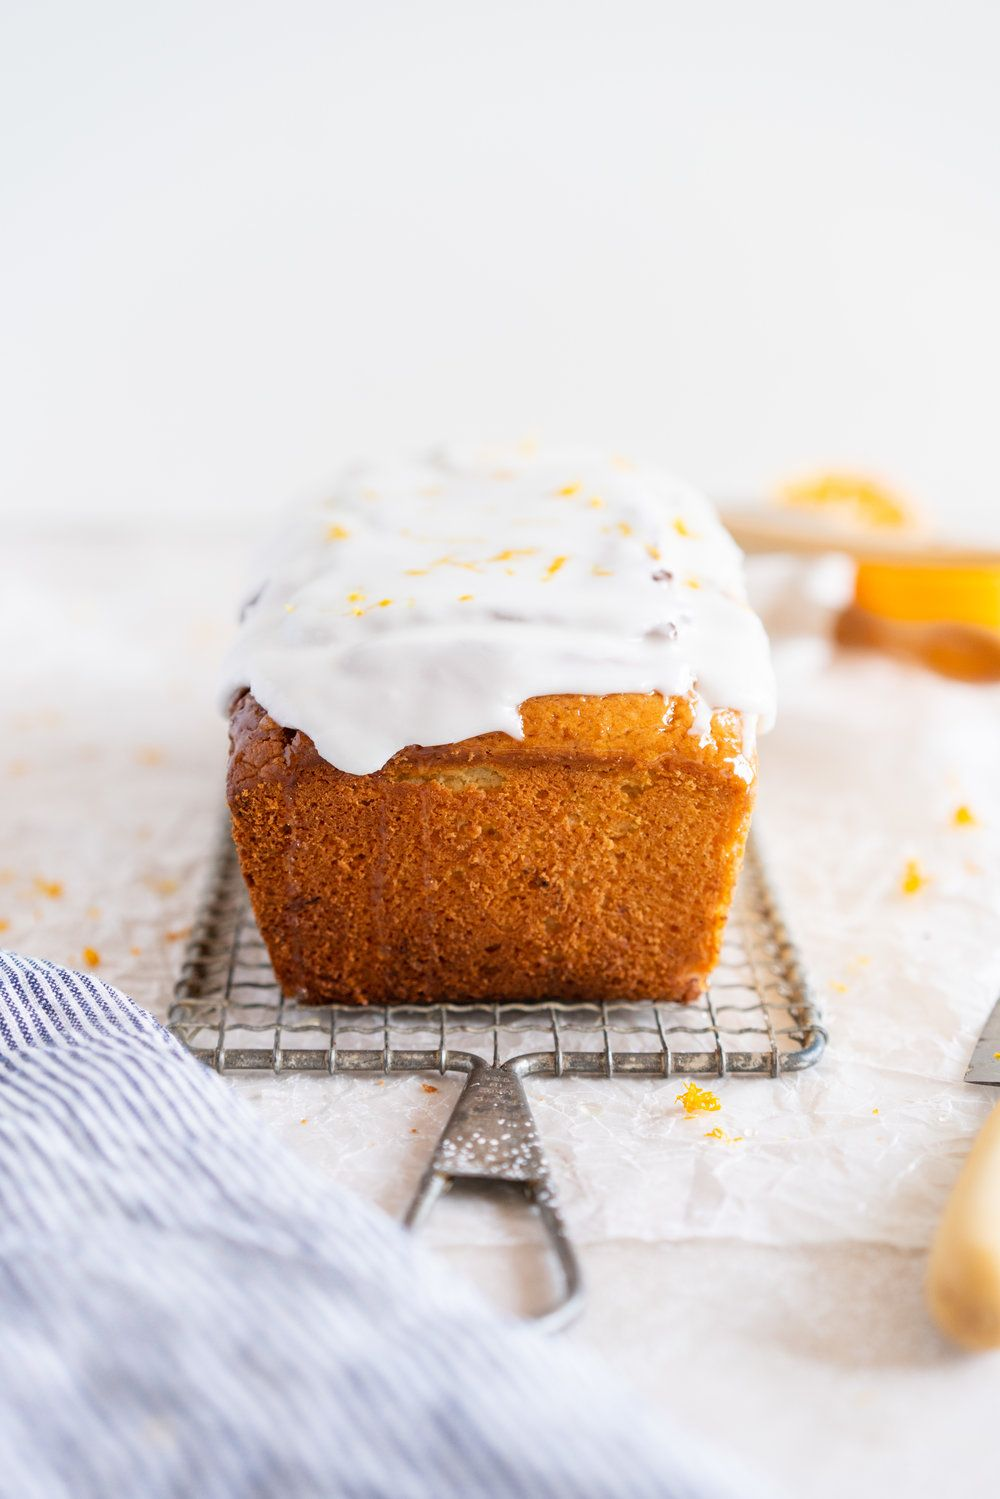 Lemon And Sour Cream Loaf Cake With Lemon Glaze Cloudy Kitchen Recipe Cake Recipes Almond Recipes Loaf Cake